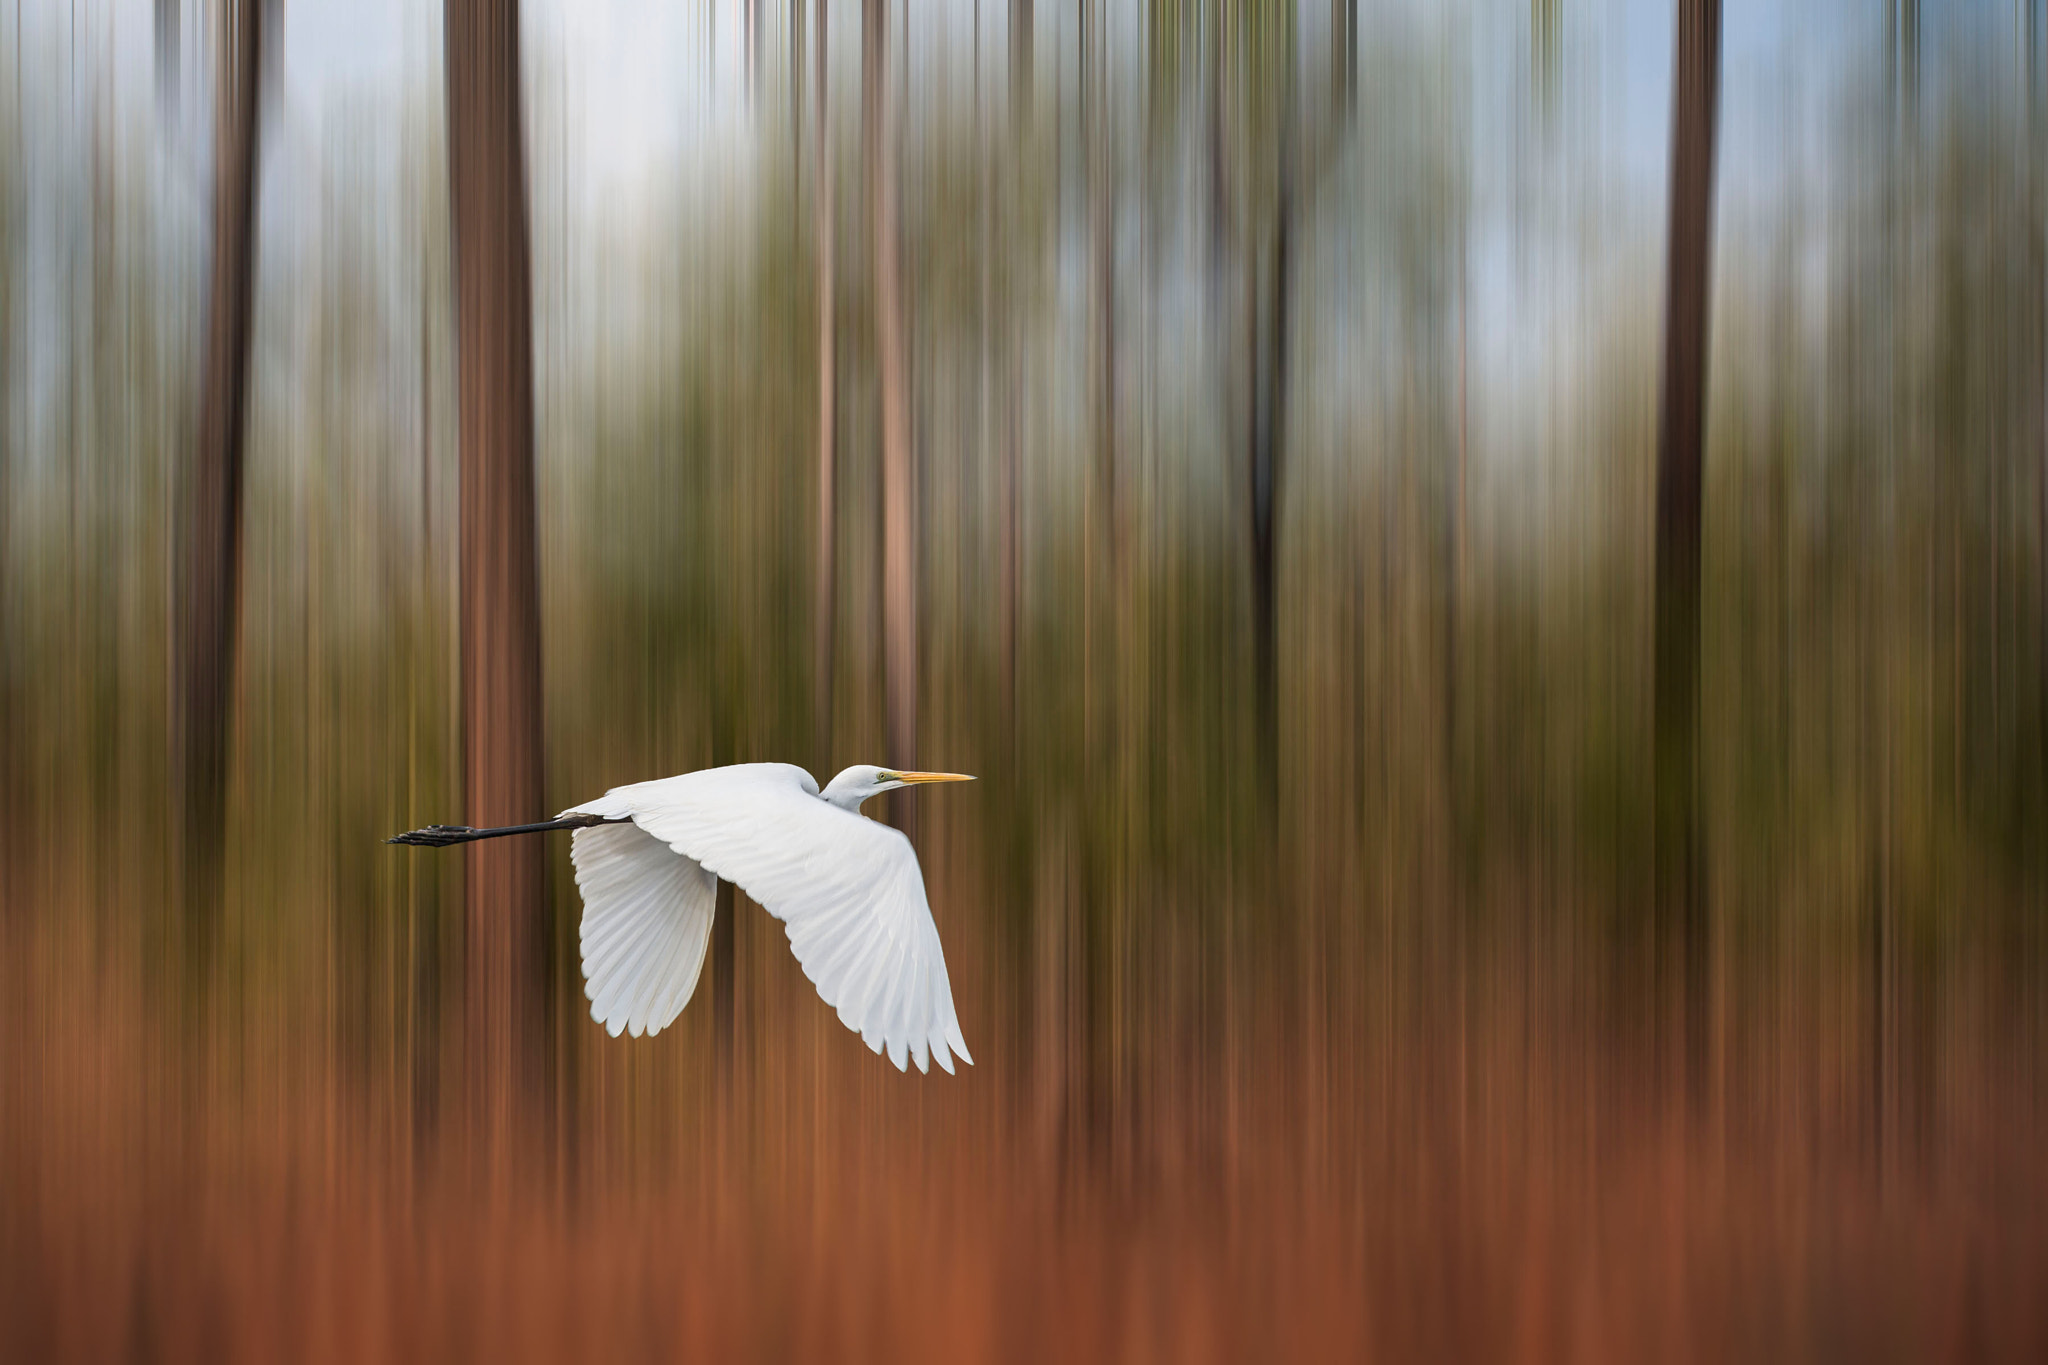 Photograph Fly Away by Margaret Morgan on 500px